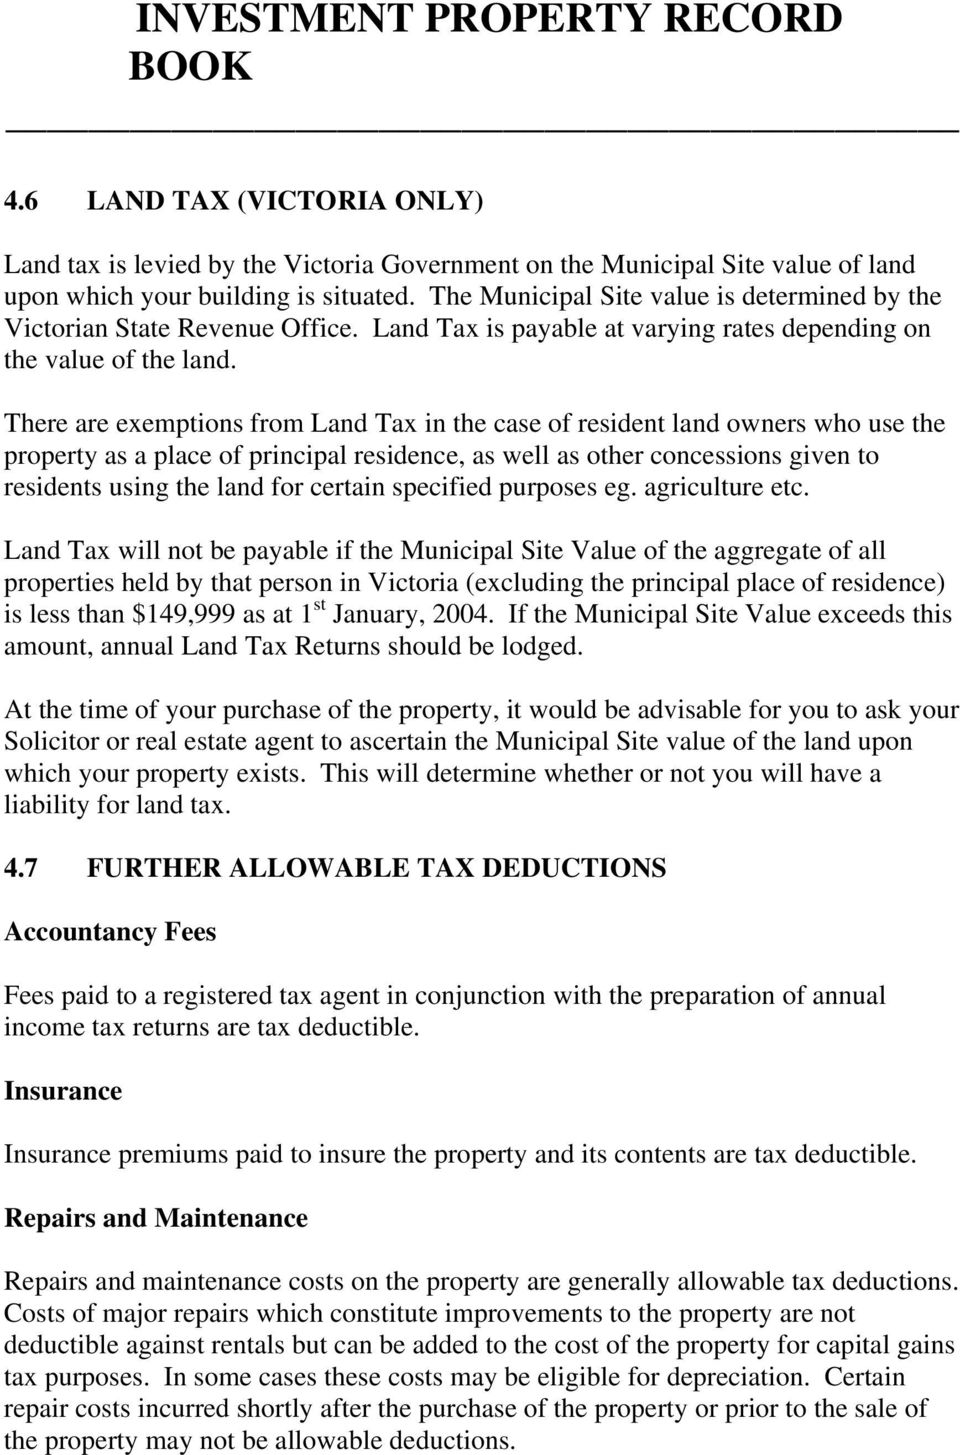 There are exemptions from Land Tax in the case of resident land owners who use the property as a place of principal residence, as well as other concessions given to residents using the land for